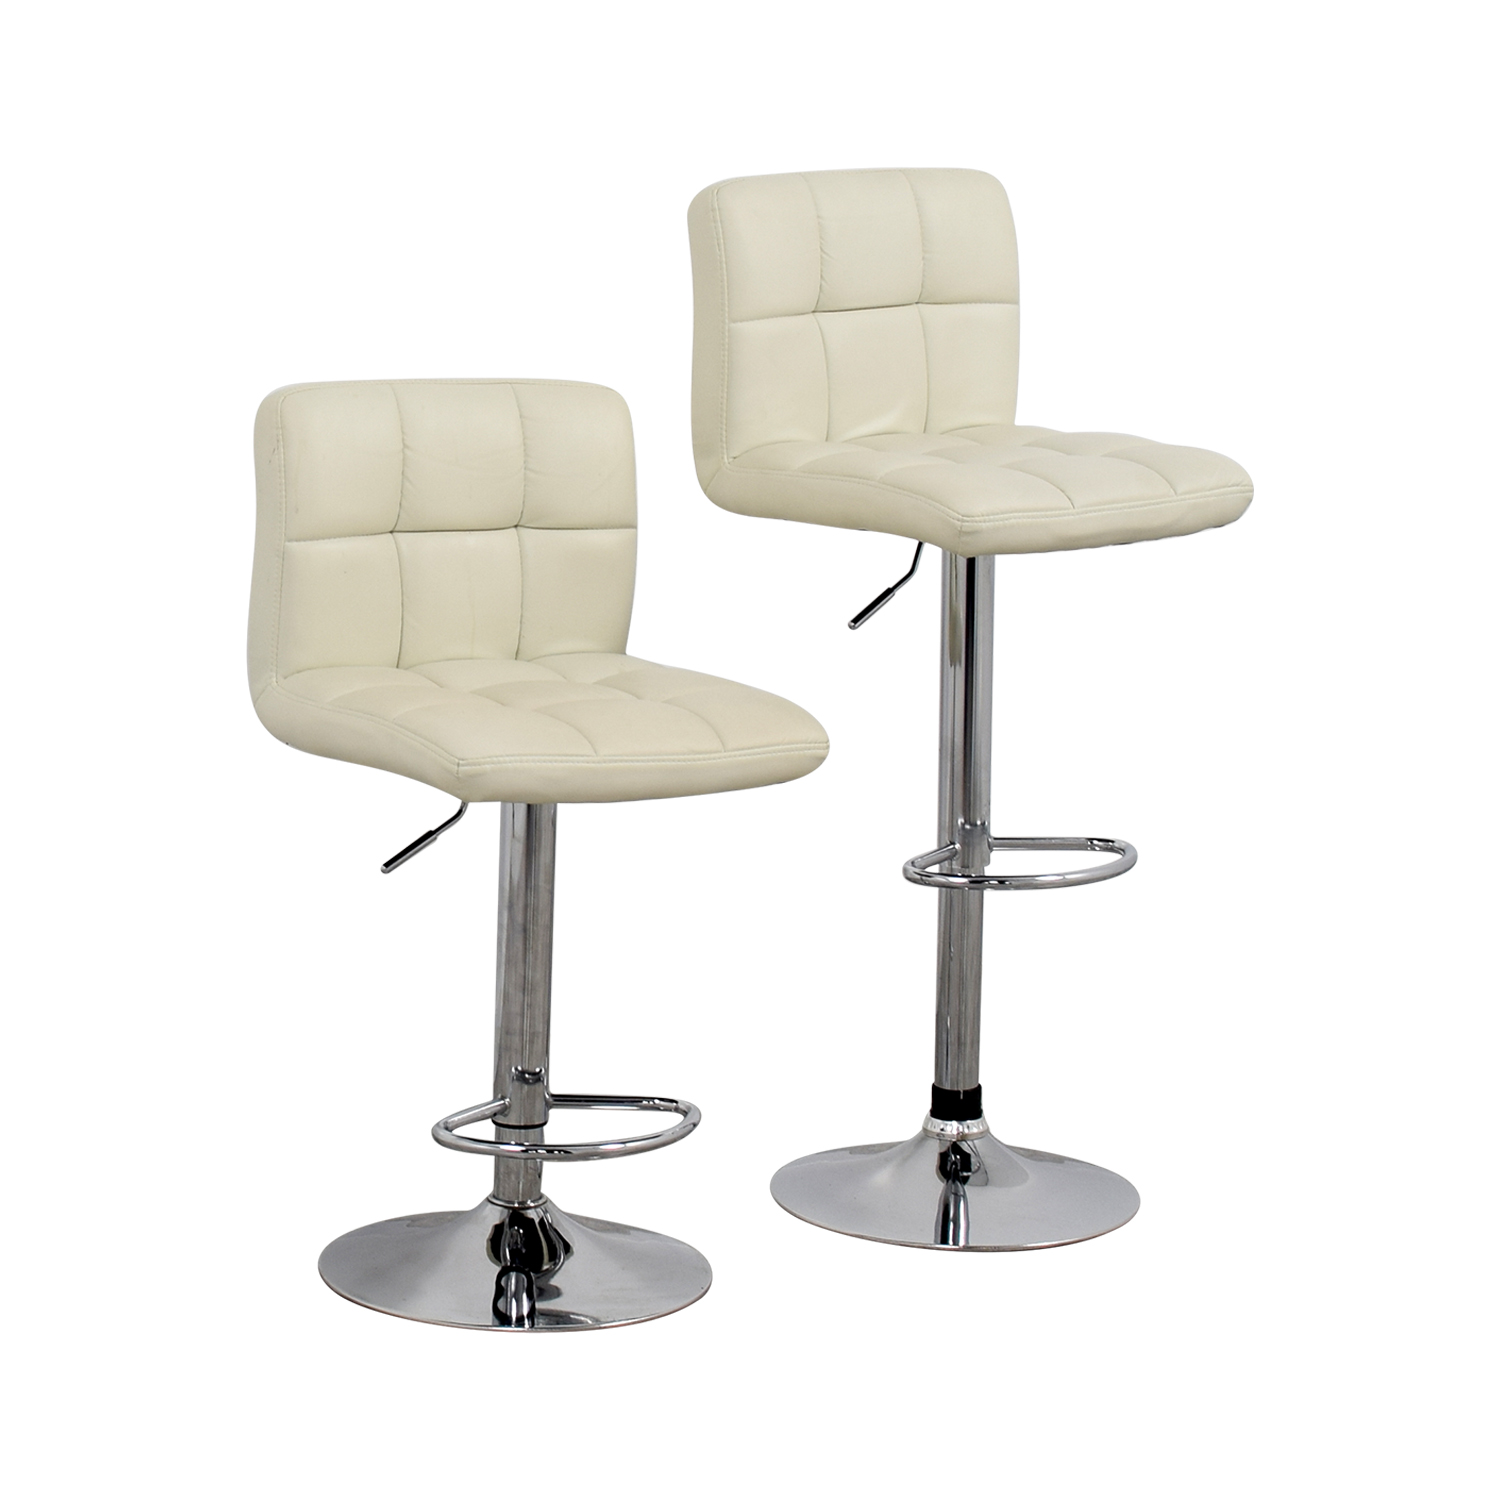 Creme and Chrome Tufted Bar Stools / Chairs